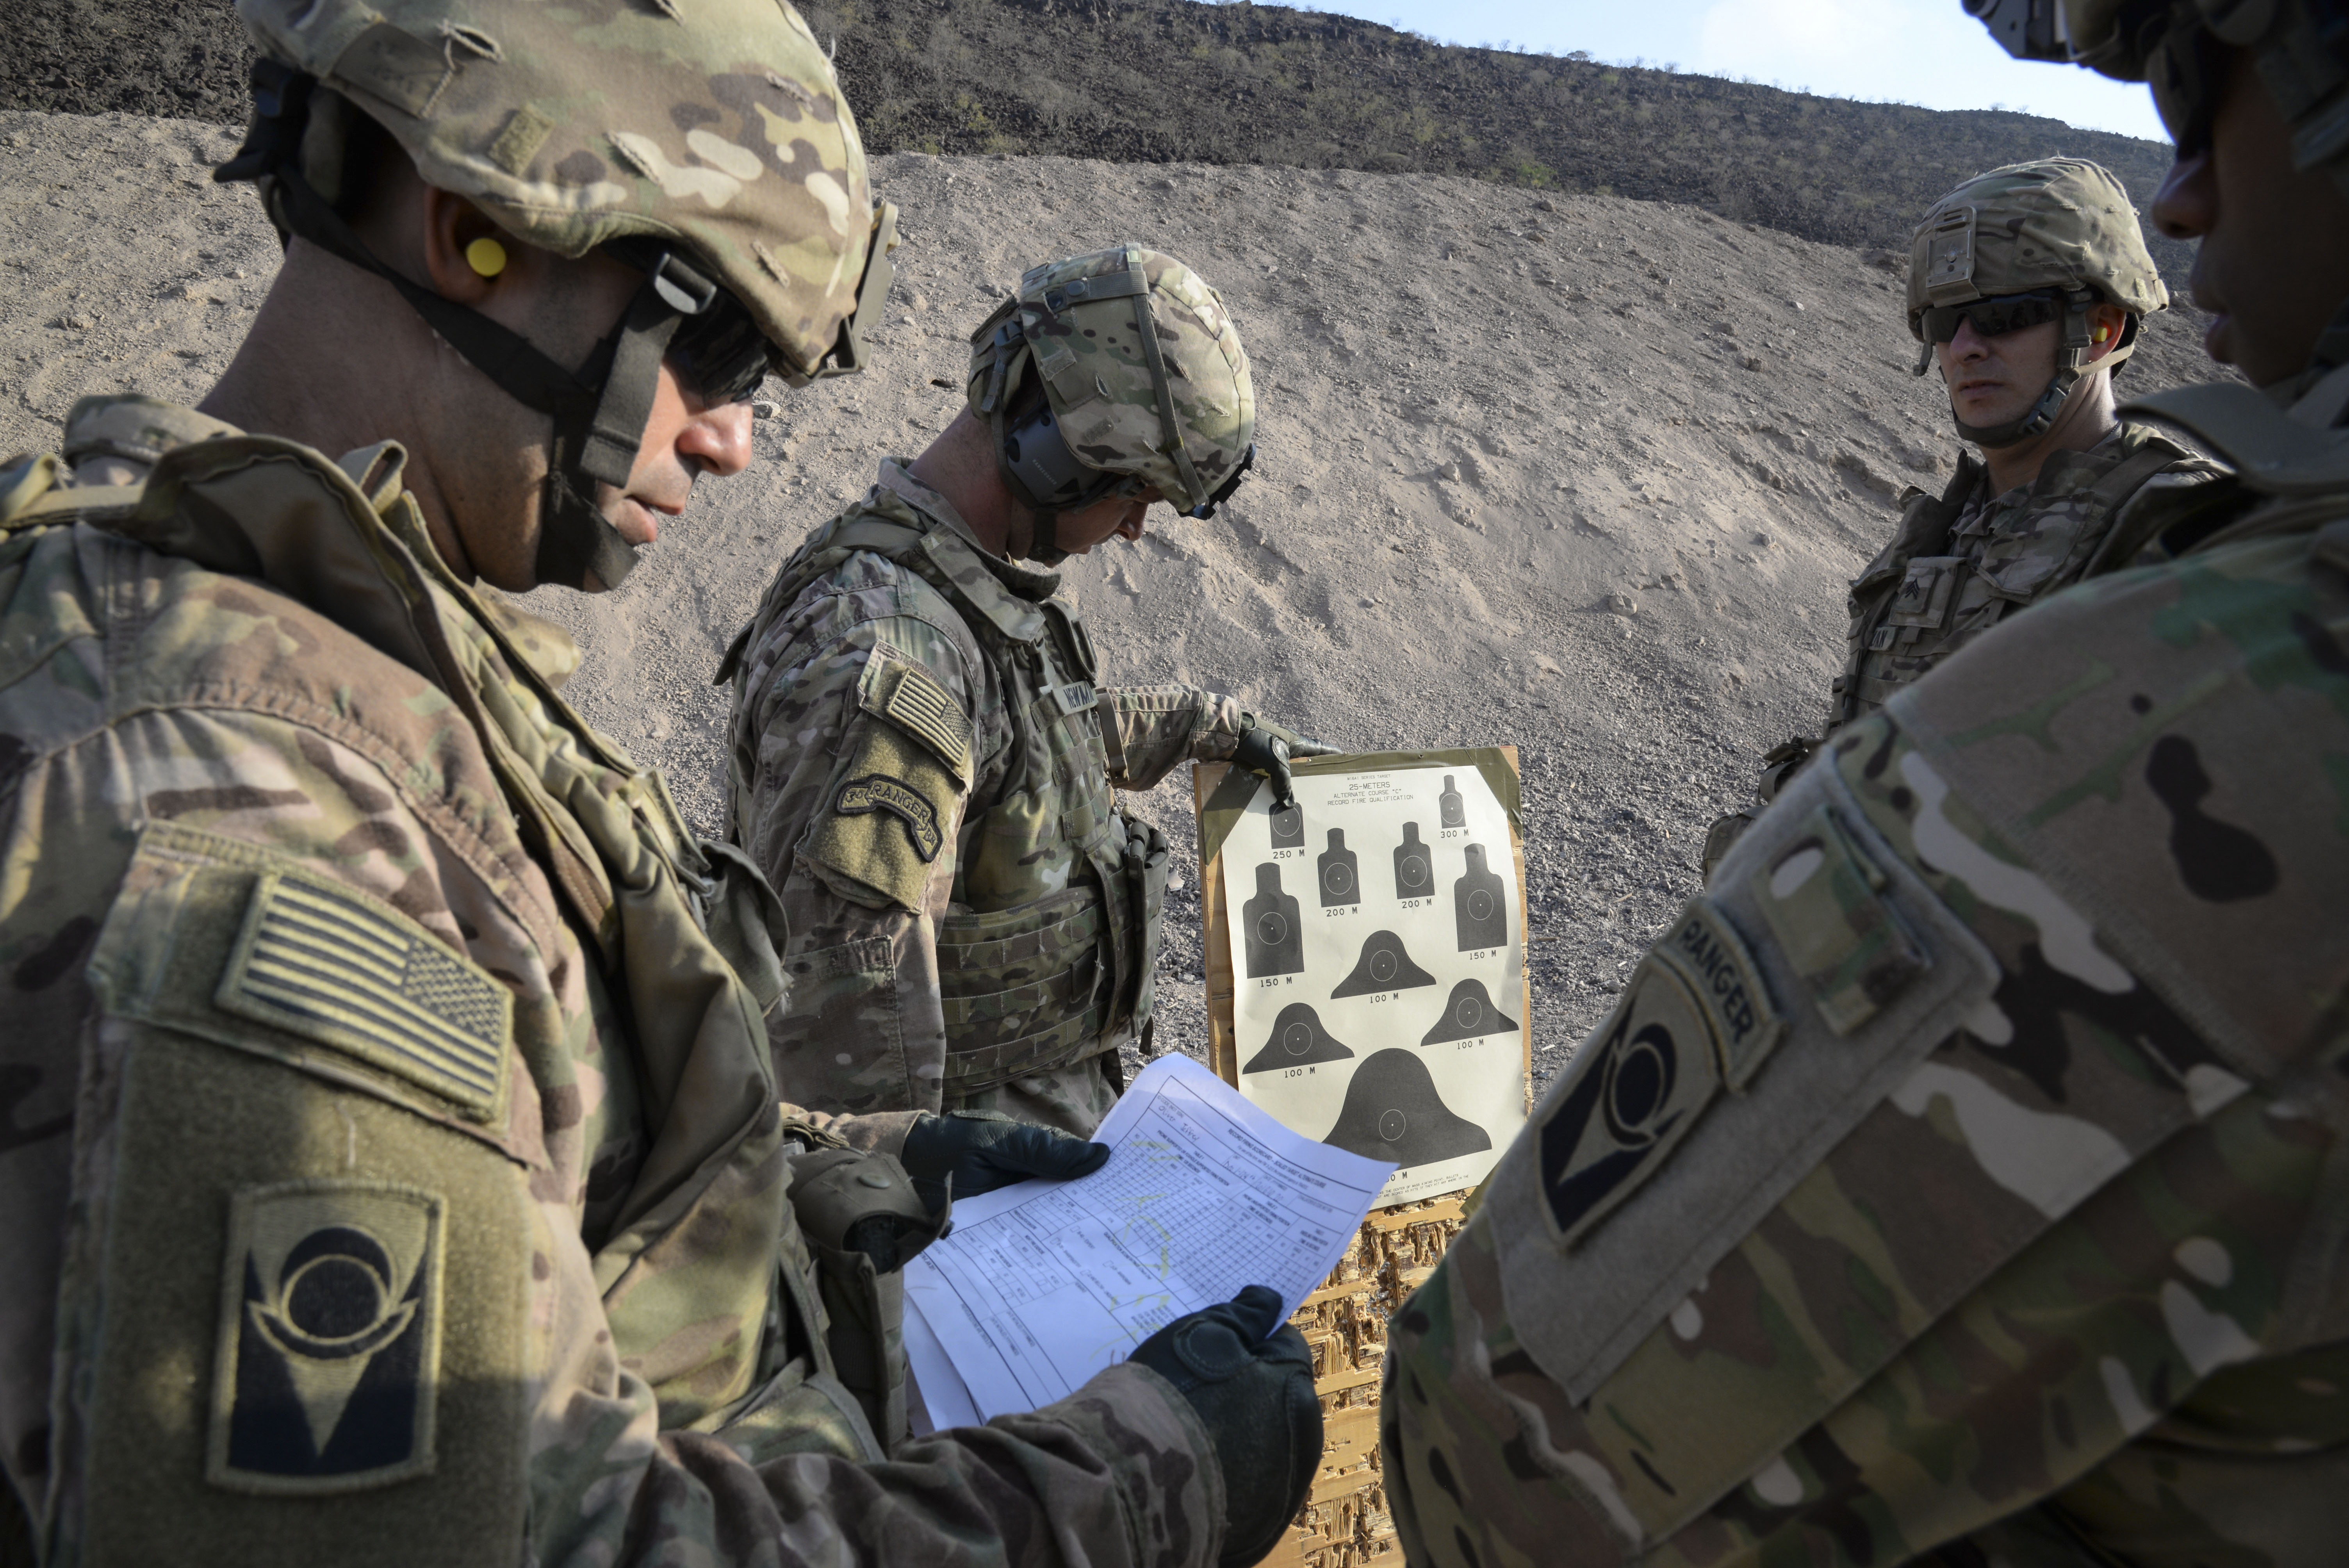 U.S. Army soldiers of Delta Company, 1st Battalion, 124th Infantry Regiment, review their shooting performance after a rifle qualification exercise in Arta, Djibouti, Oct. 20, 2016. The training began with a routine rifle qualification, followed by an exercise designed to teach soldiers how to handle a situation when their vehicle takes direct enemy fire in a combat zone. (U.S. Air Force photo by Staff Sgt. Benjamin Raughton)